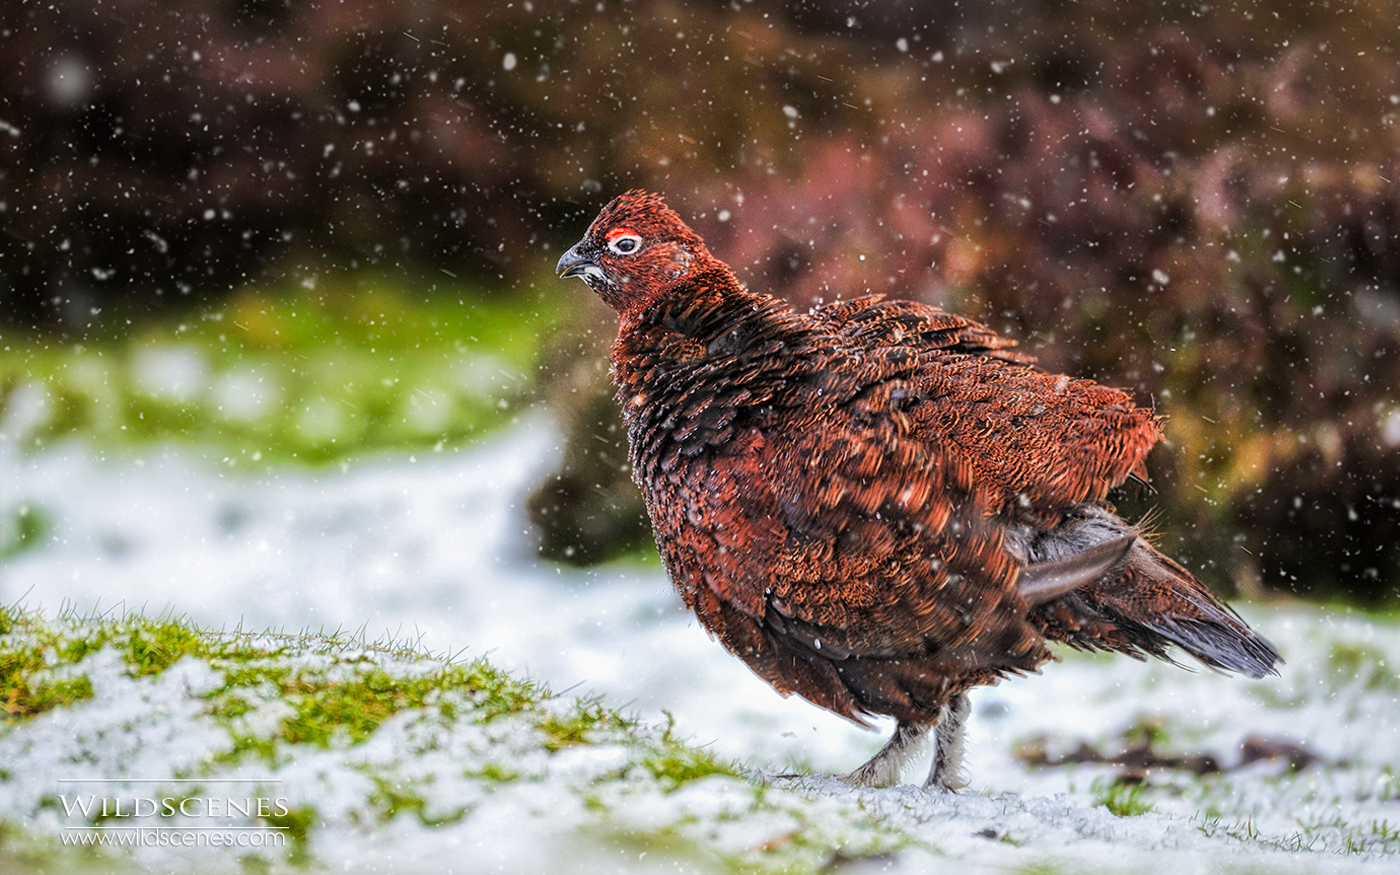 Red grouse in snow flurry, Yorkshire